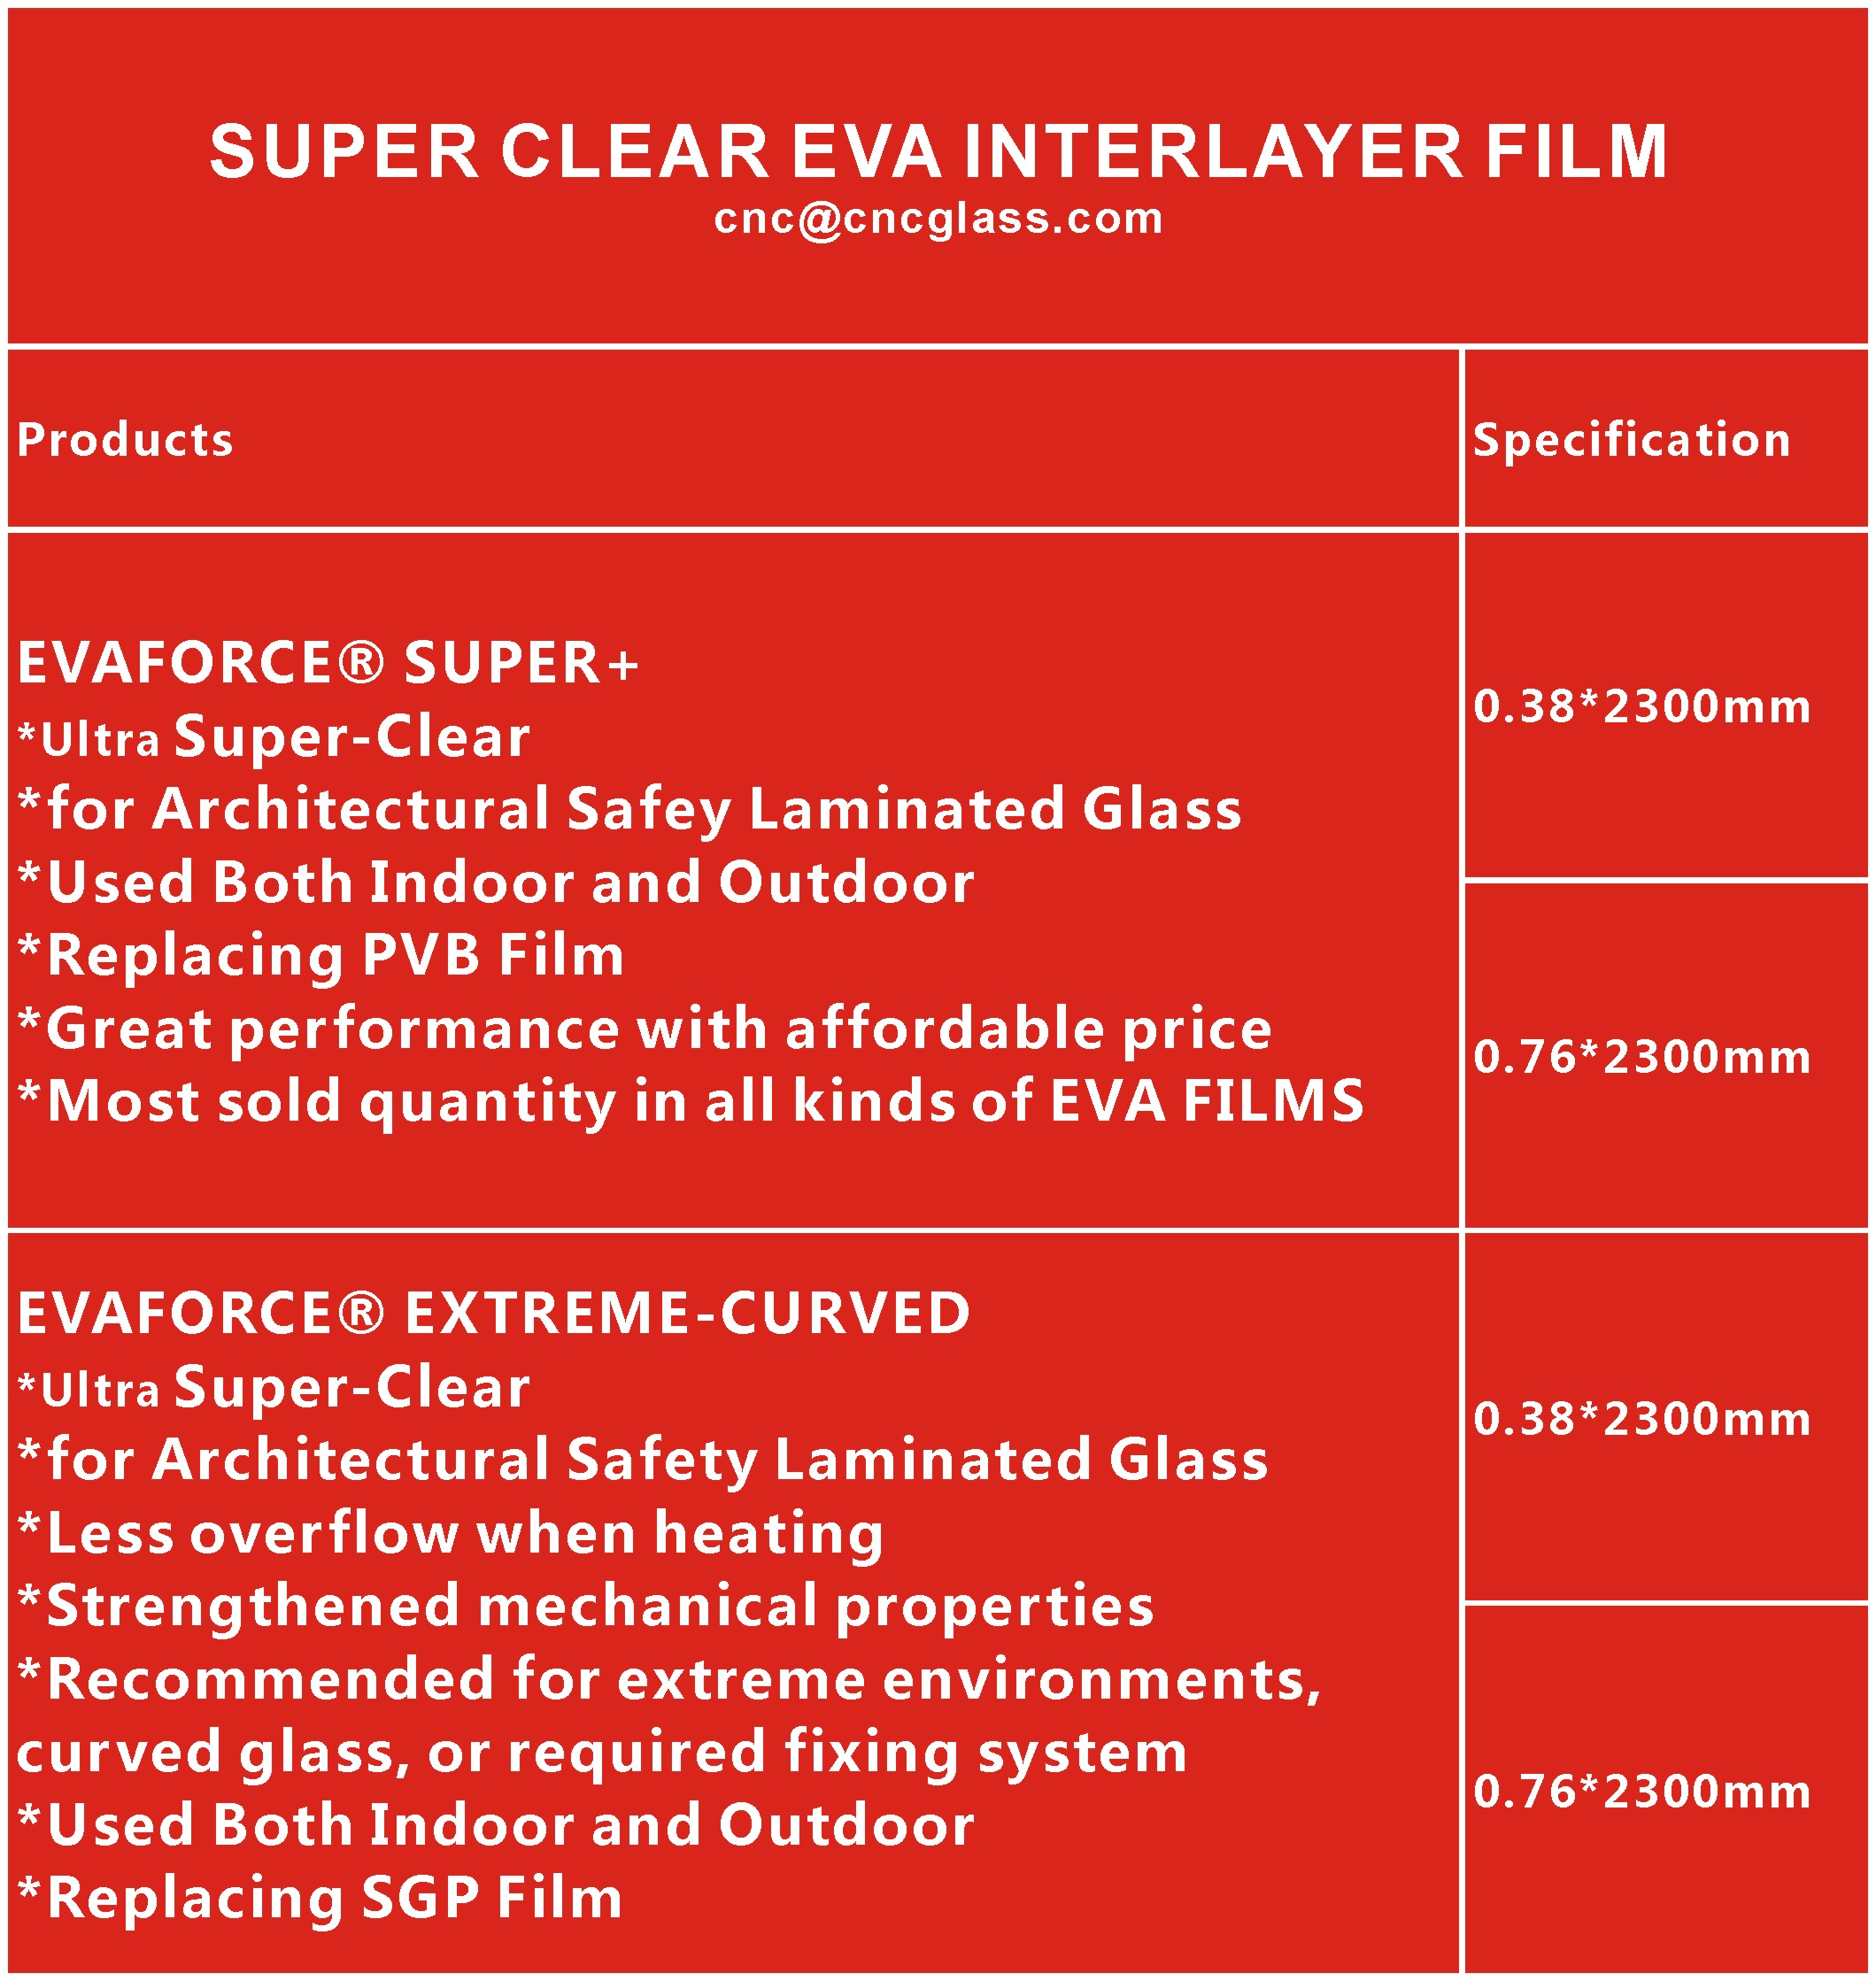 ULTRA SUPER CLEAR EVAFOFCE® INTERLAYER FILM